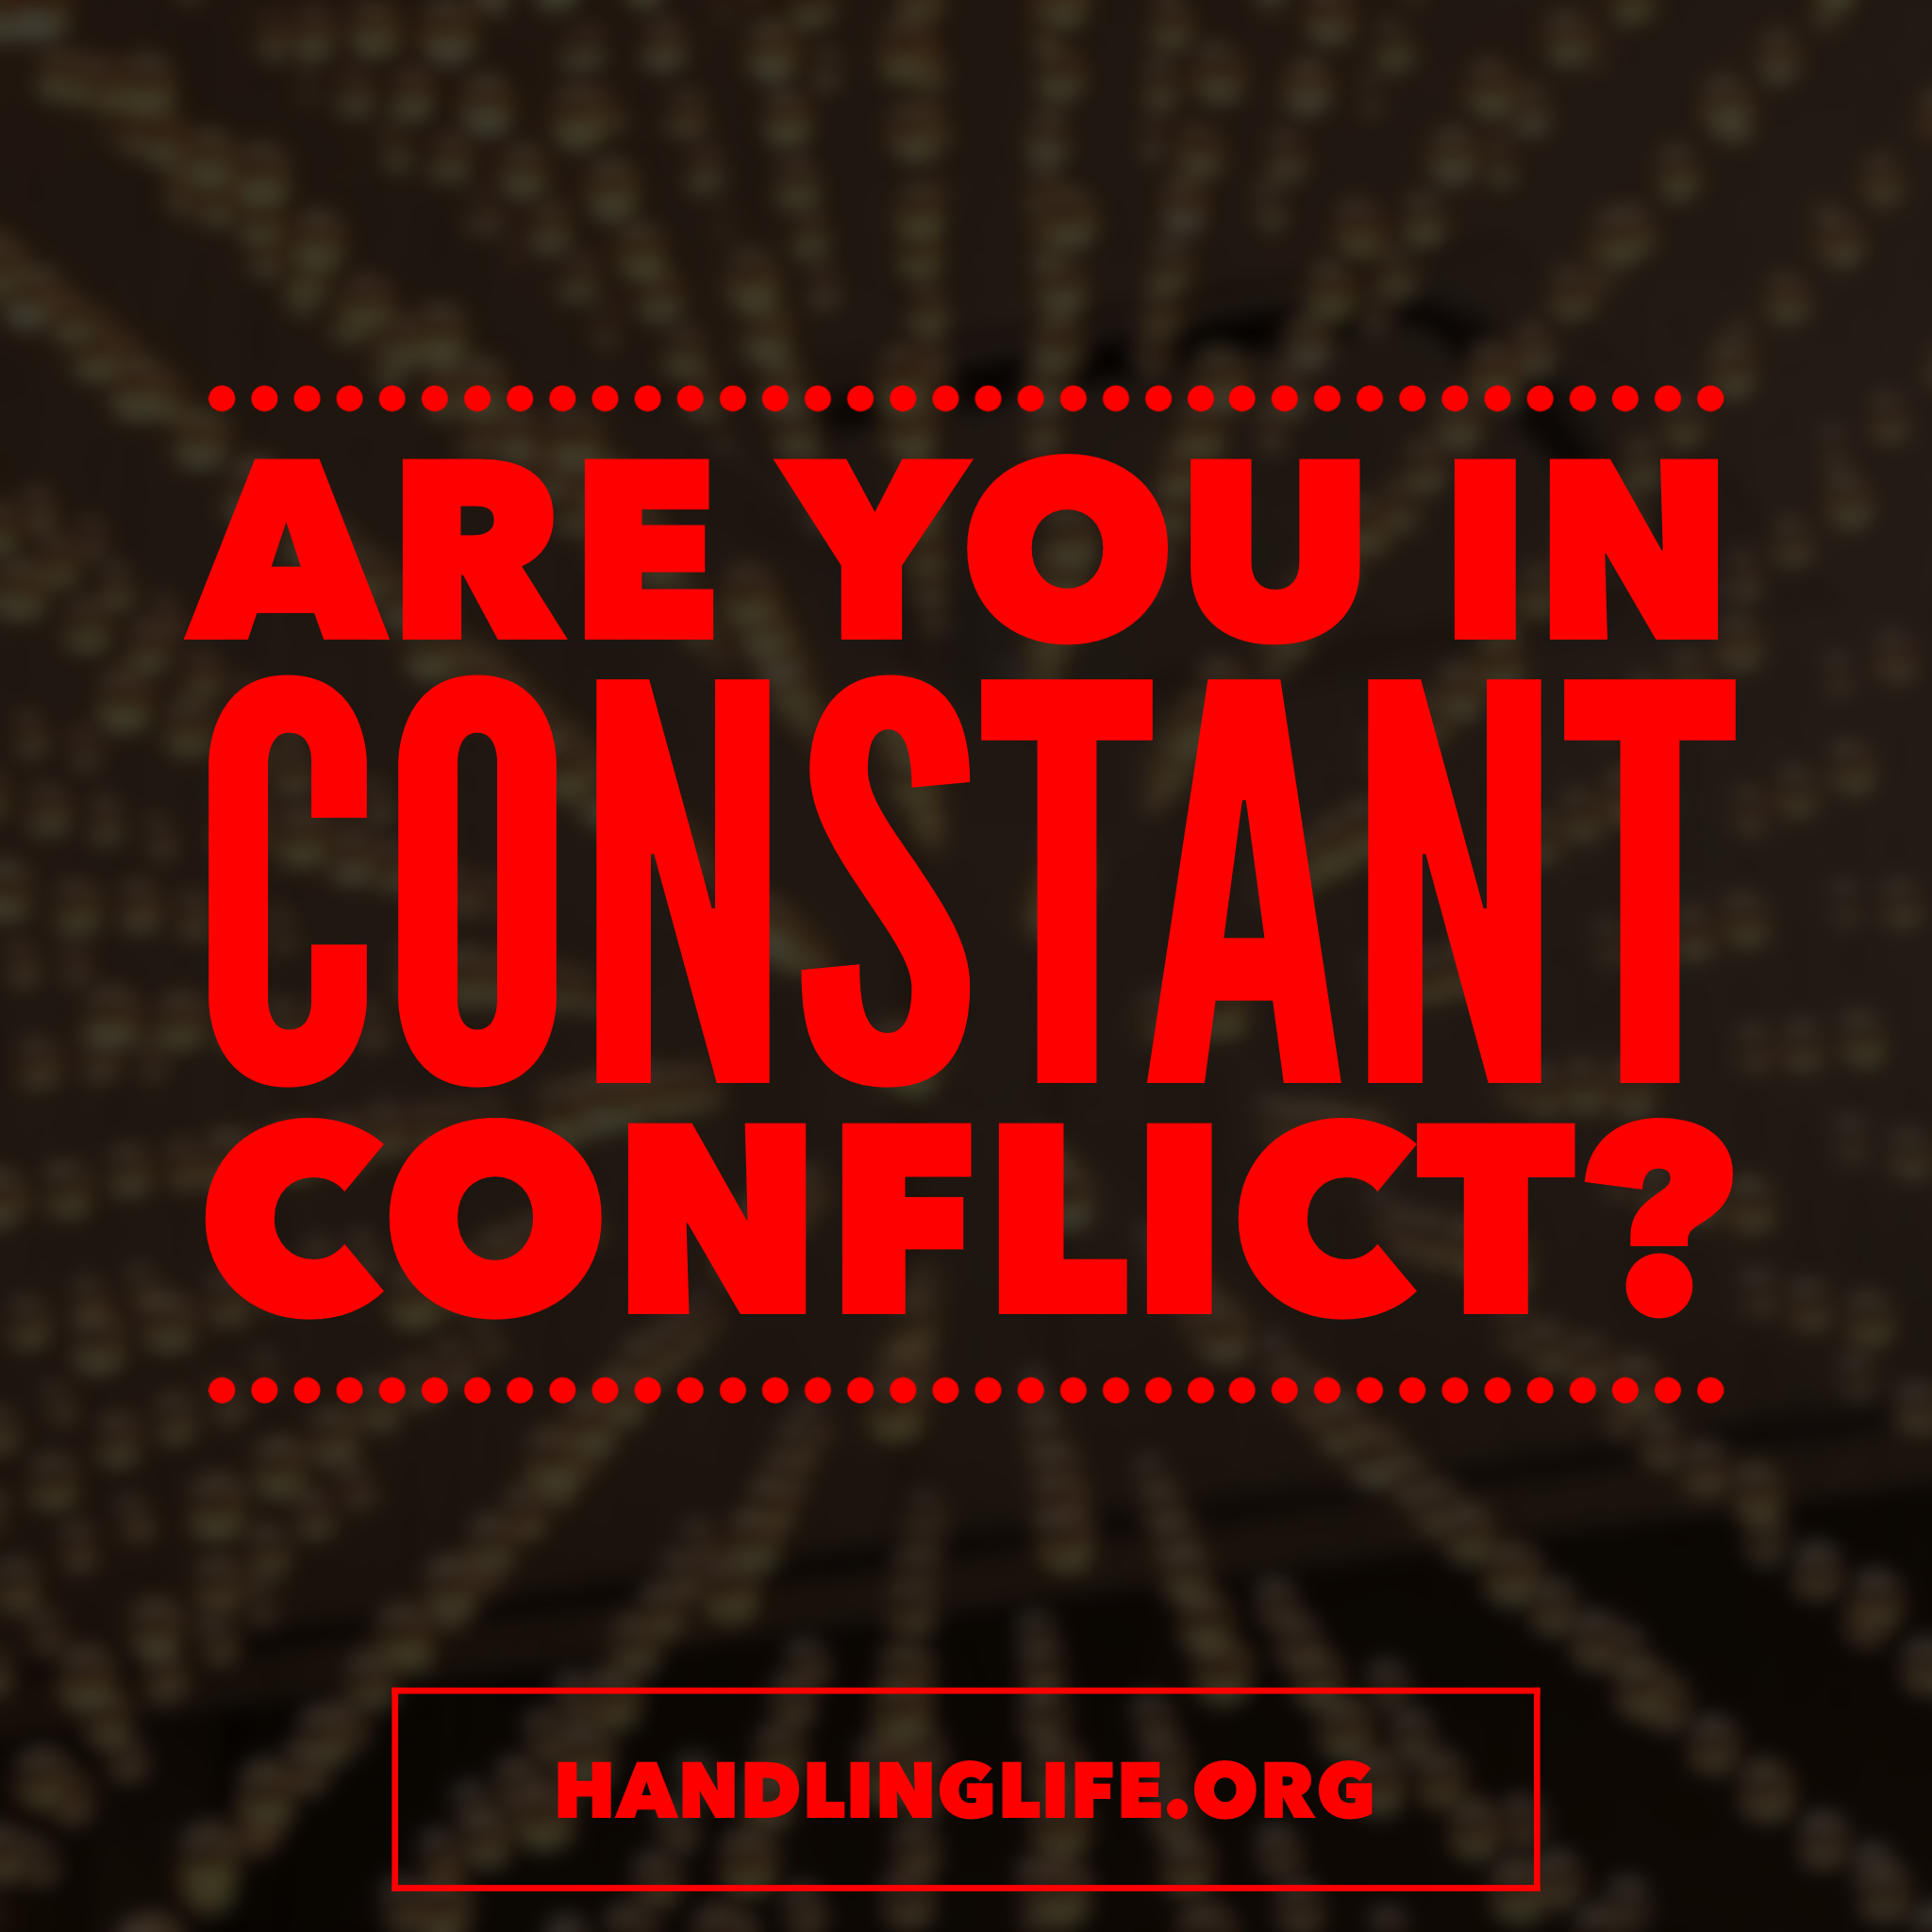 Artwork for Are you in constant conflict?